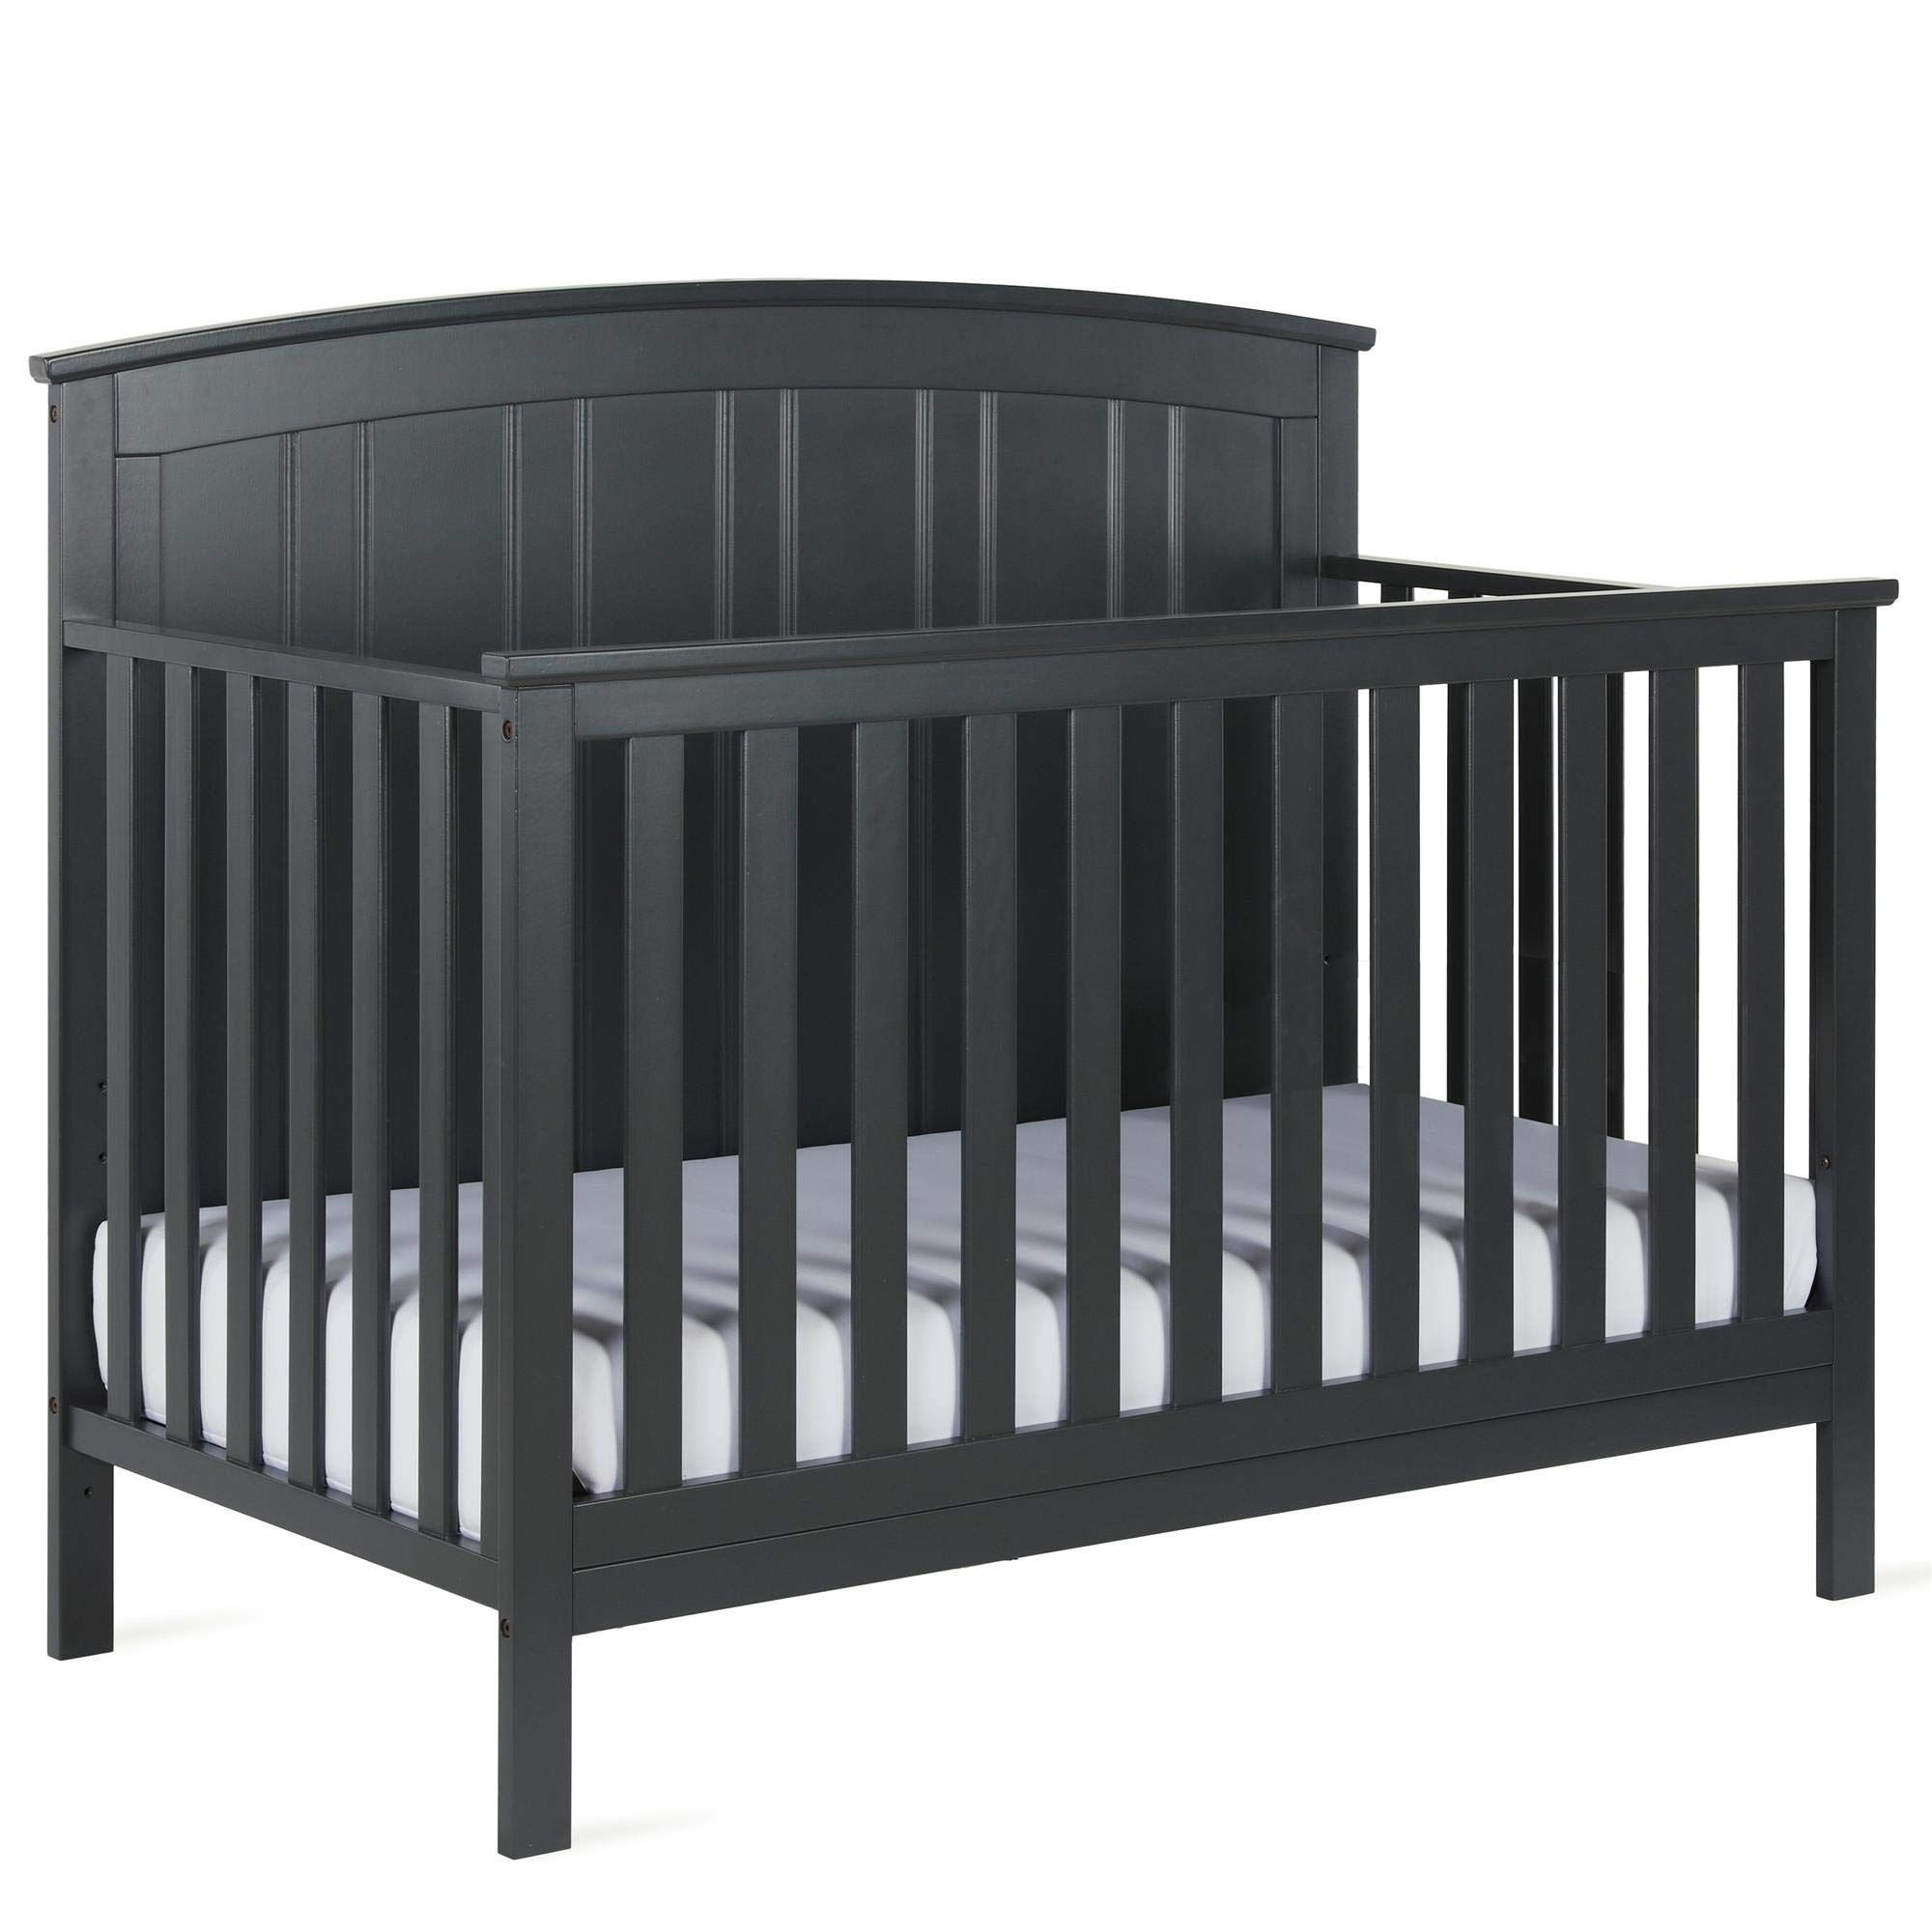 Baby Relax Colton 5-in-1 Convertible Crib, Slate Gray by Baby Relax